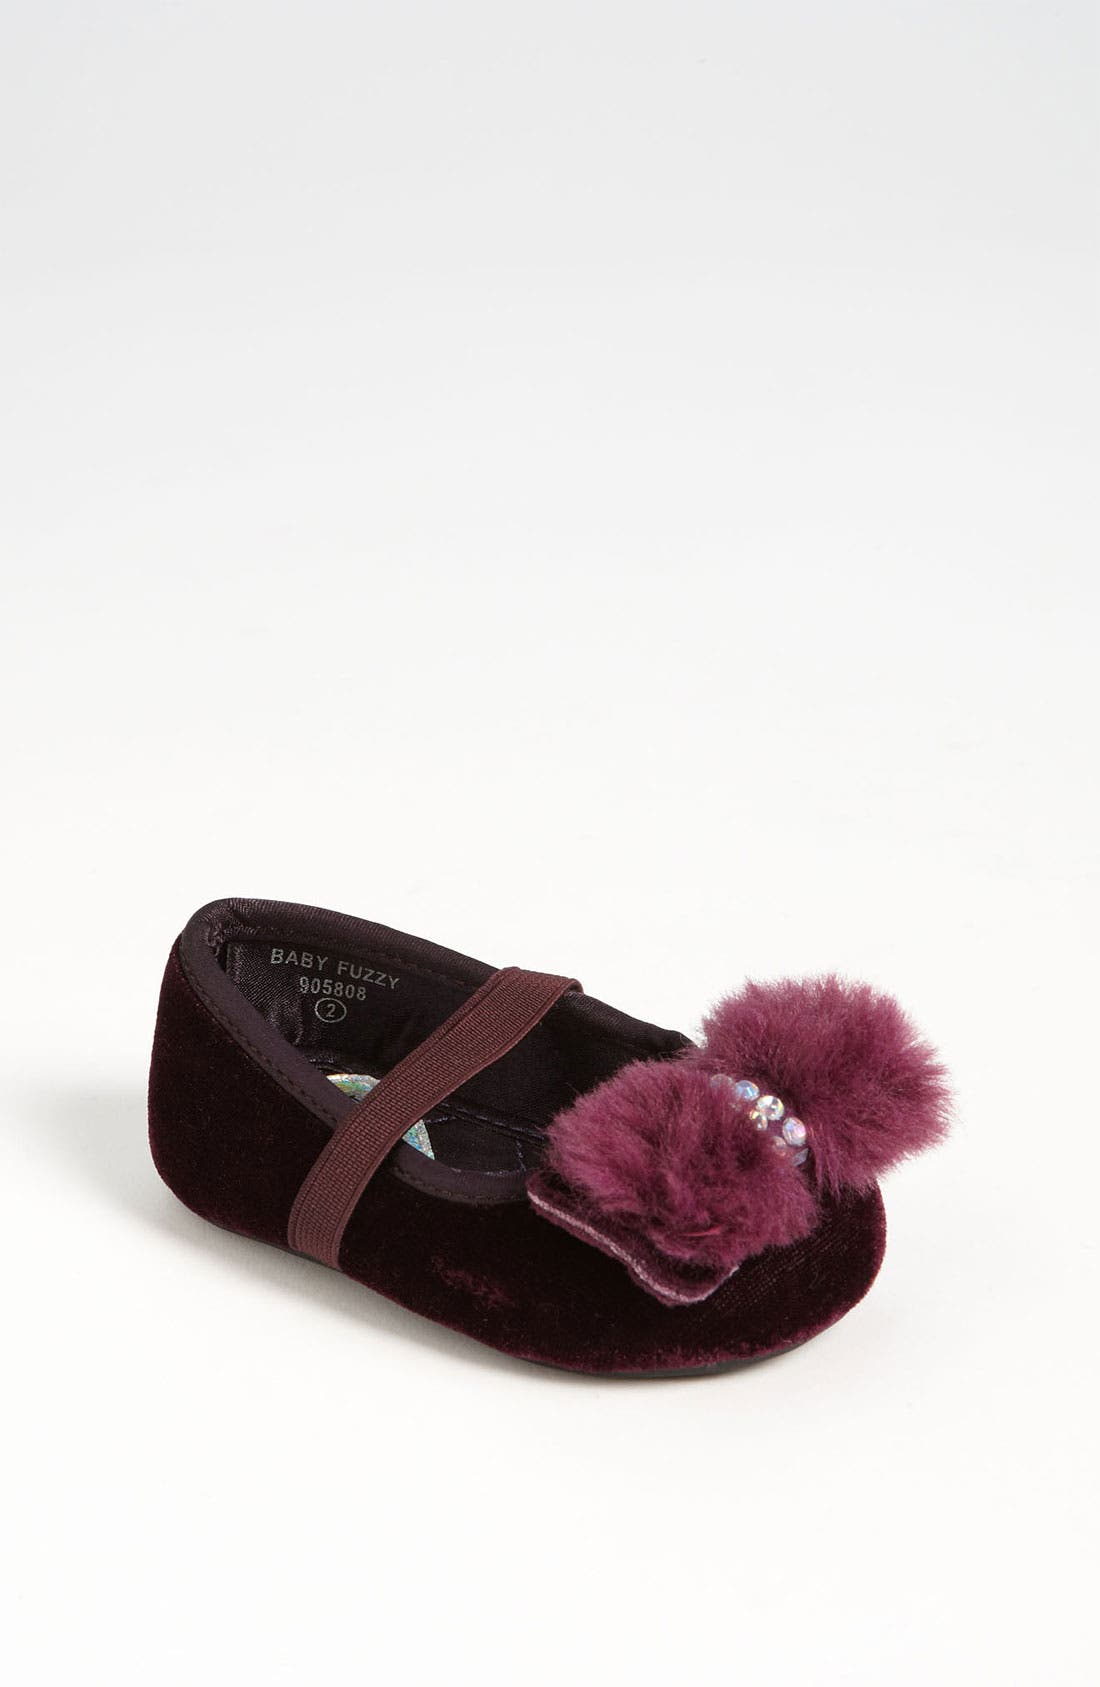 Alternate Image 1 Selected - Stuart Weitzman 'Baby Furry' Crib Shoe (Baby)